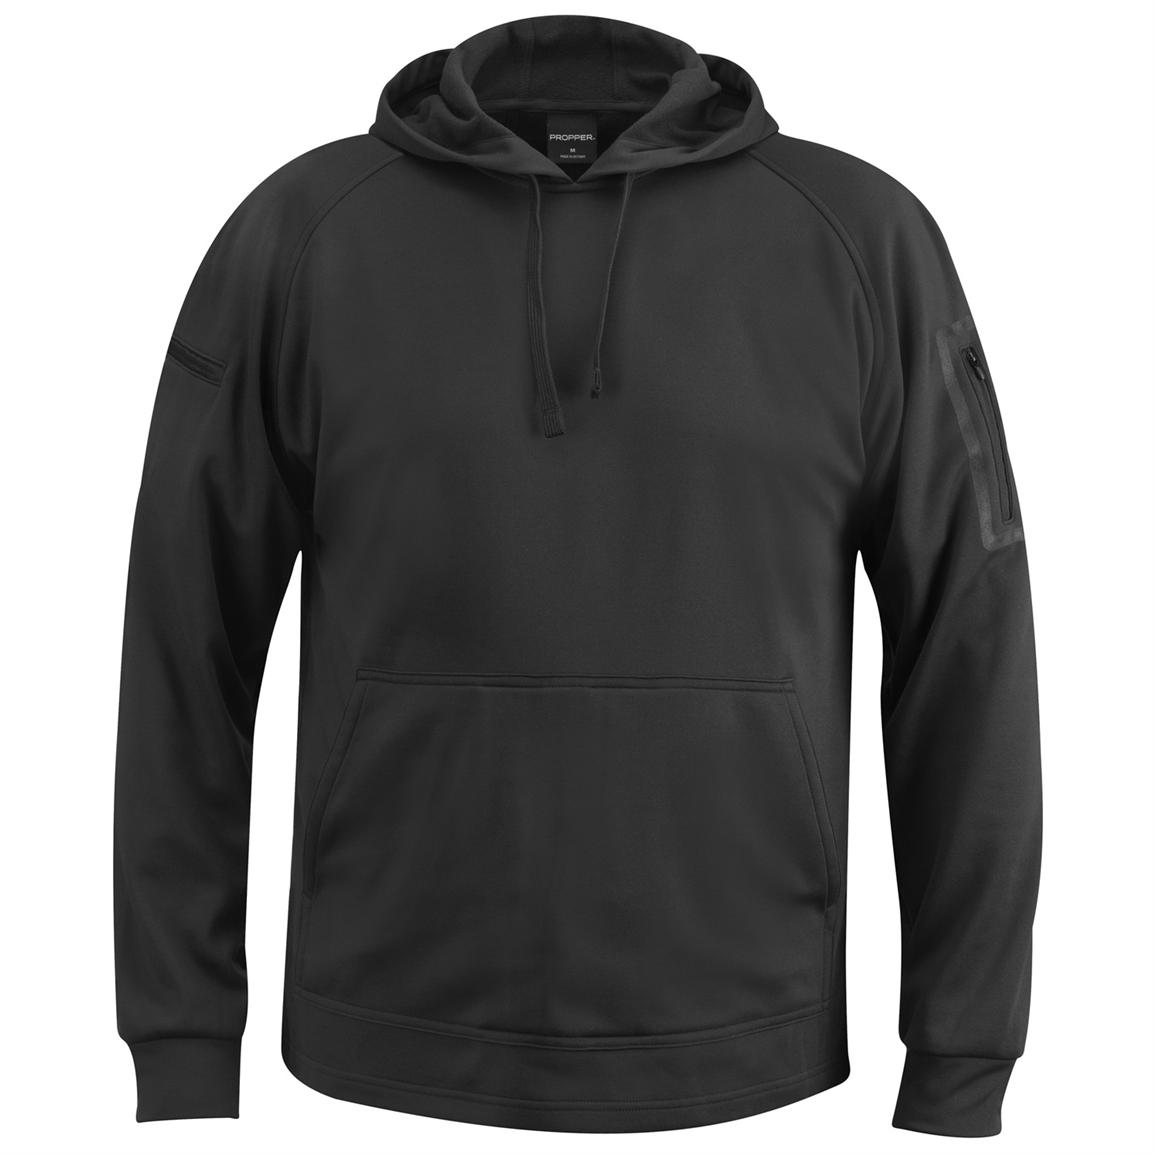 Propper™ Cover™ Hooded Sweatshirt, Charcoal